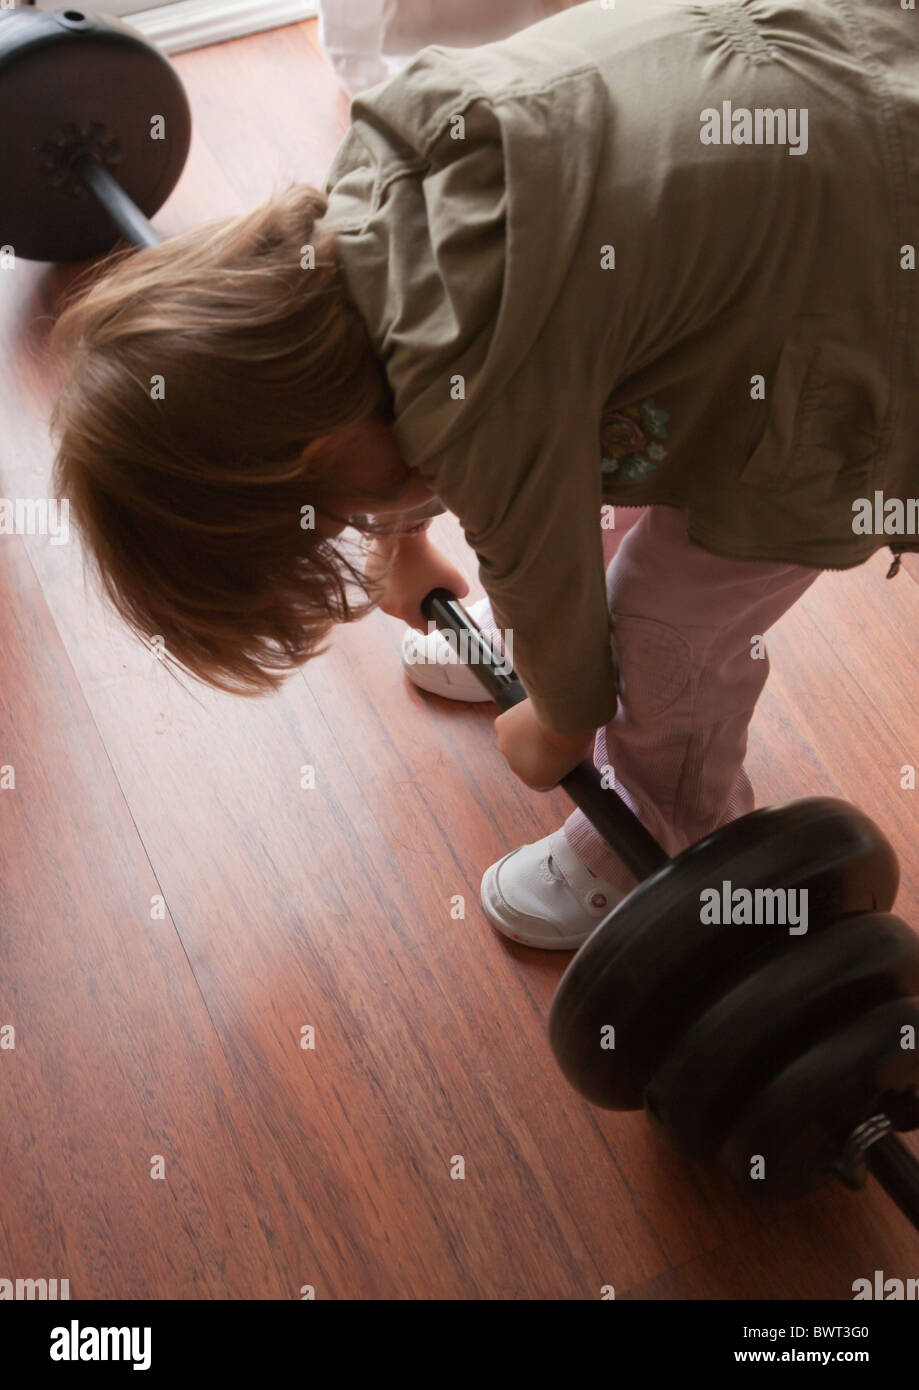 Three year old girl trying to lift heavy weights. - Stock Image